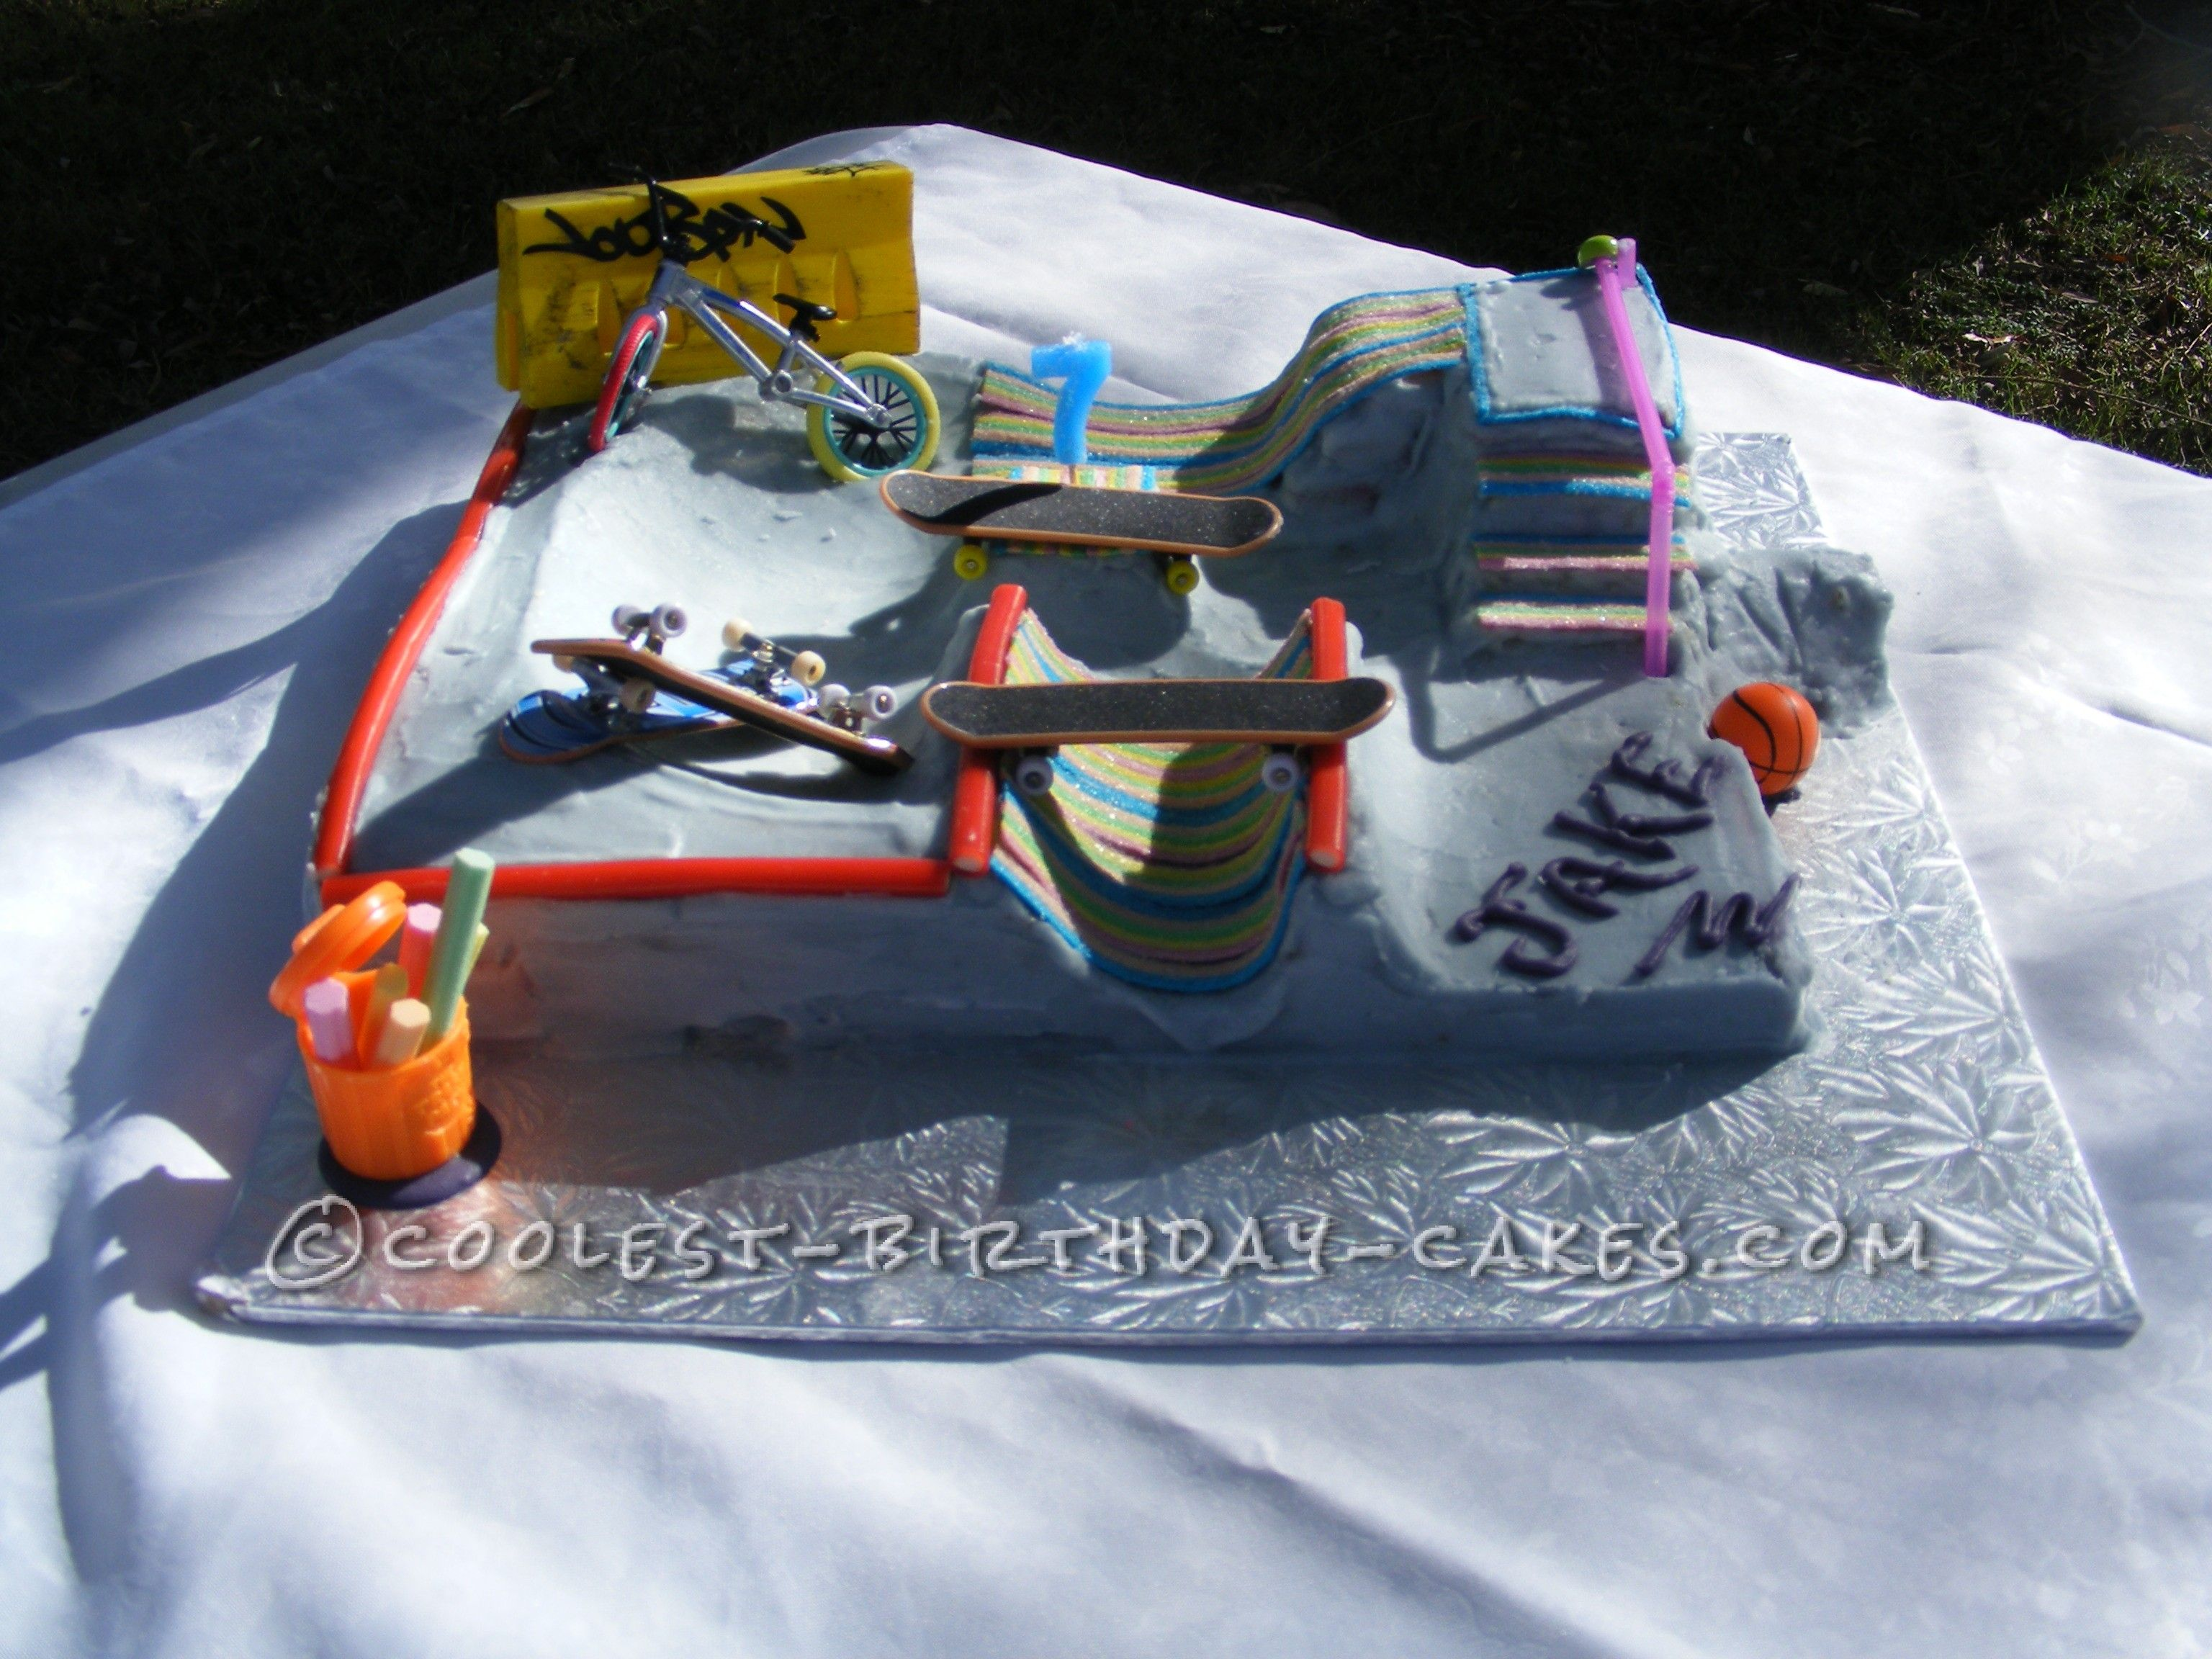 The Coolest Skate Park Cake In 2019 Coolest Birthday